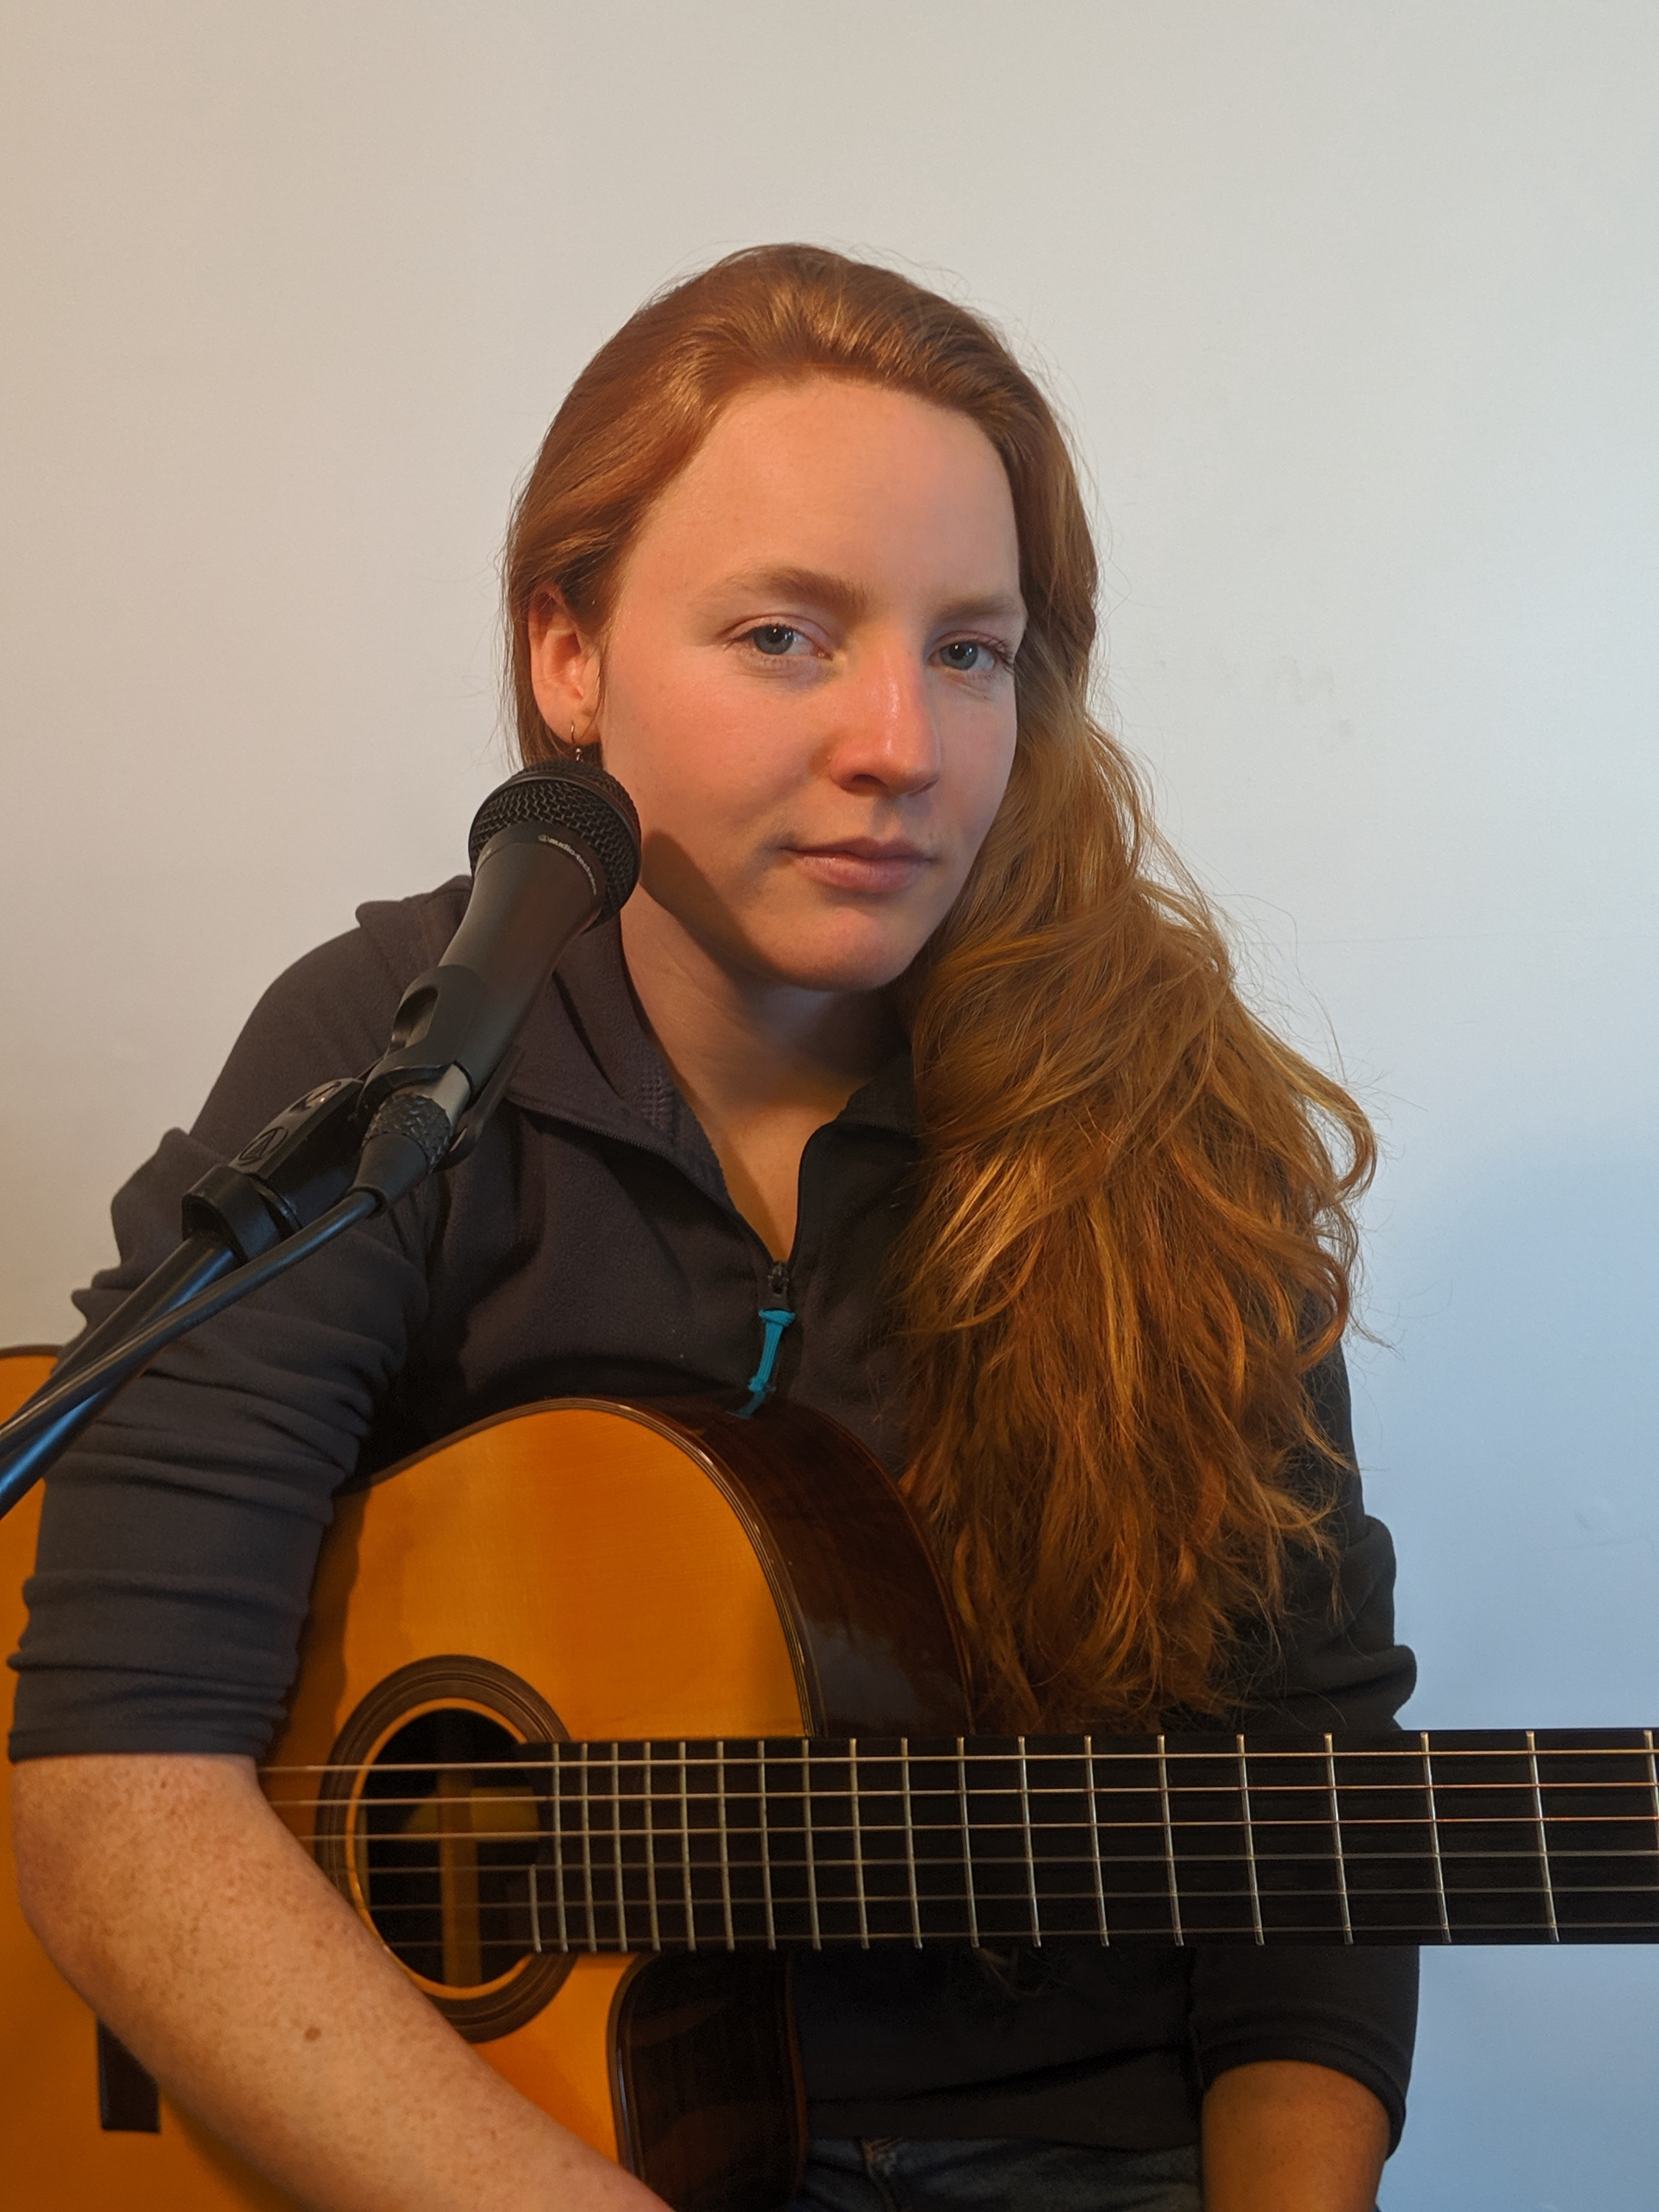 A Far Cry From Singing In The Woods An Interview With Rebekah Foster By Ethan Hartranft Medium